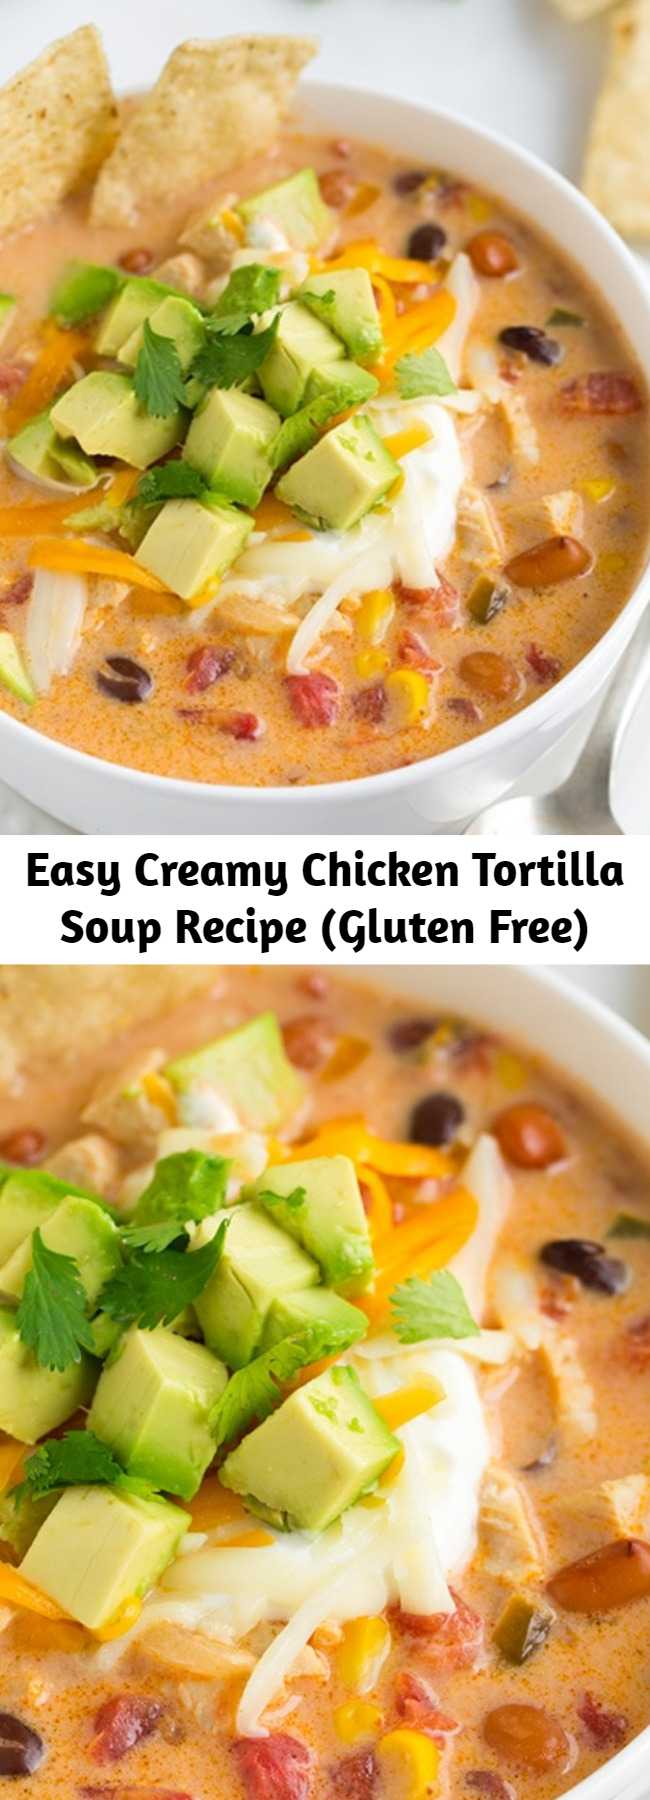 Easy Creamy Chicken Tortilla Soup Recipe (Gluten Free) - A hearty, warming and comforting soup made with juicy chicken, vegetables and loaded with delicious toppings. Best of all this soup is whipped up in around 30 minutes and couldn't be easier!